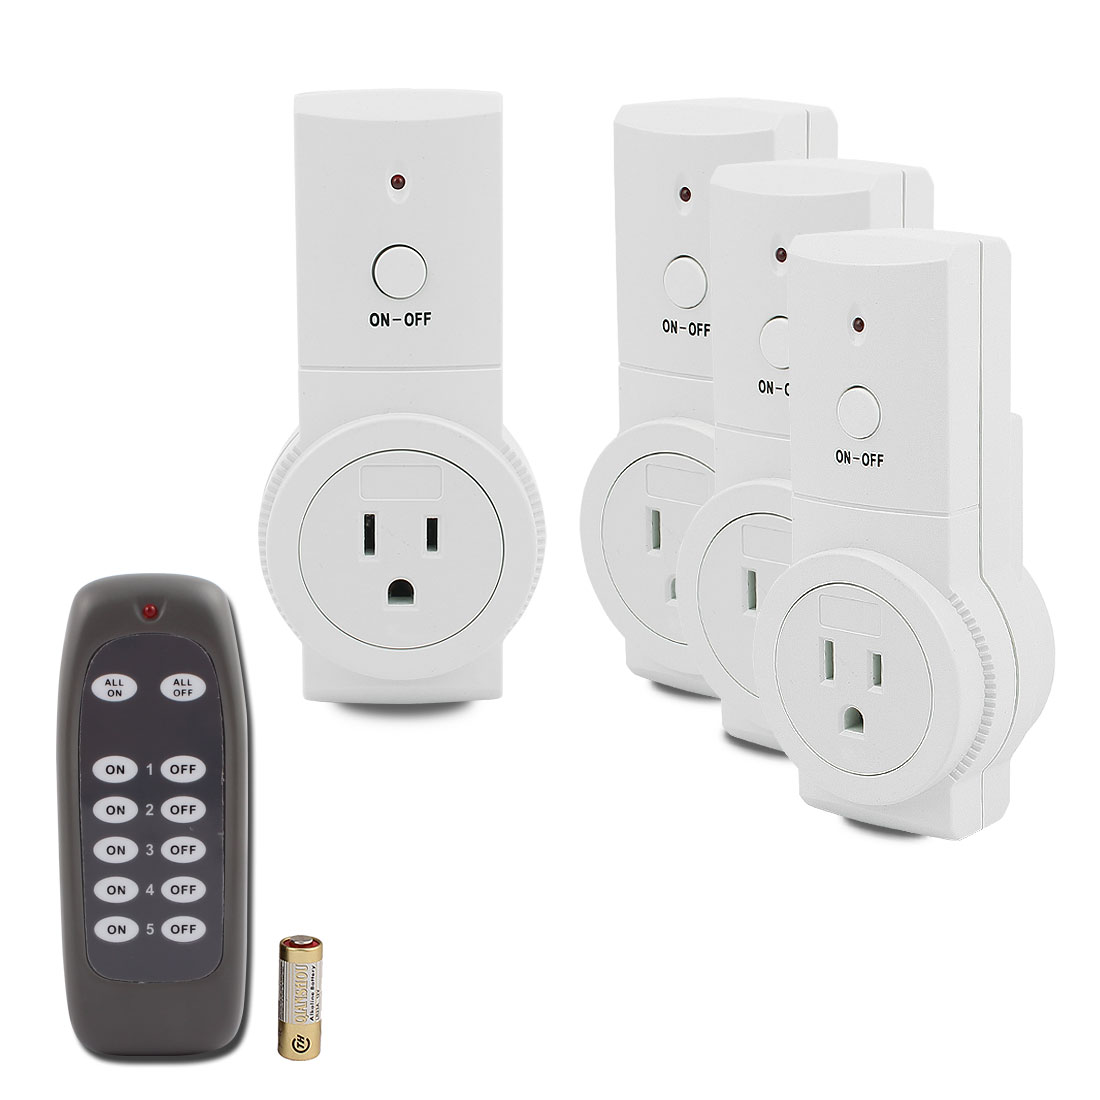 4 Pcs Wireless Power US Sockets Switches Outlets US Plug 120VAC Home Mains w 1 Remote Control